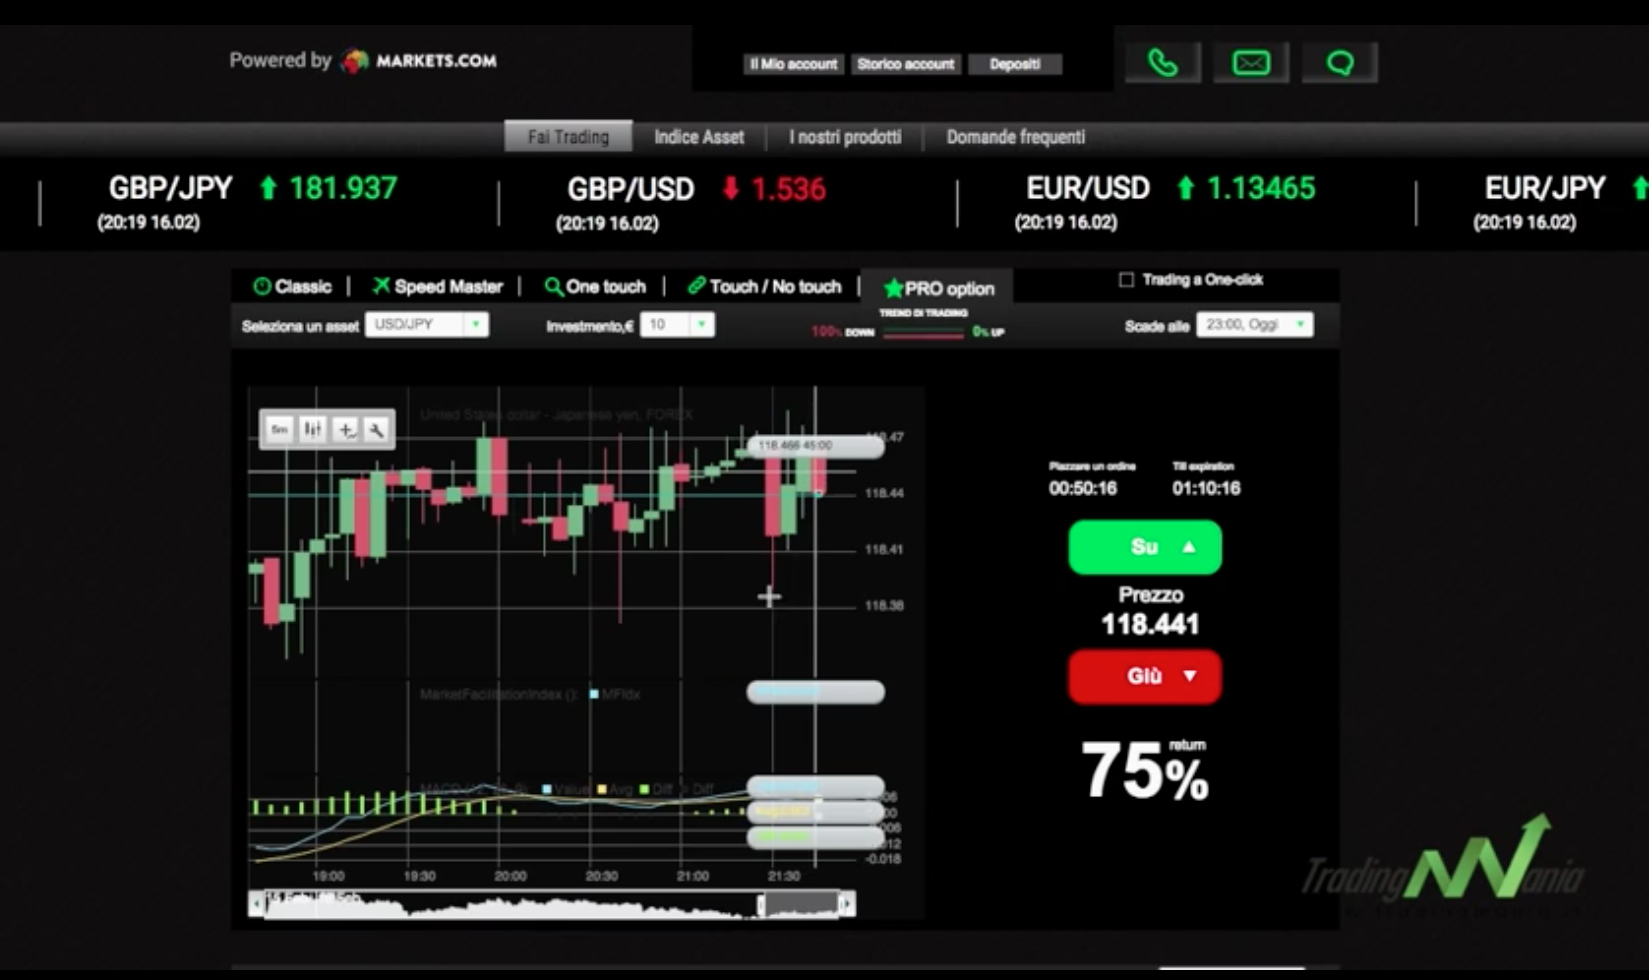 manuale per opzioni binarie democracy | Forex trading strategies, Forex trading, Stock research